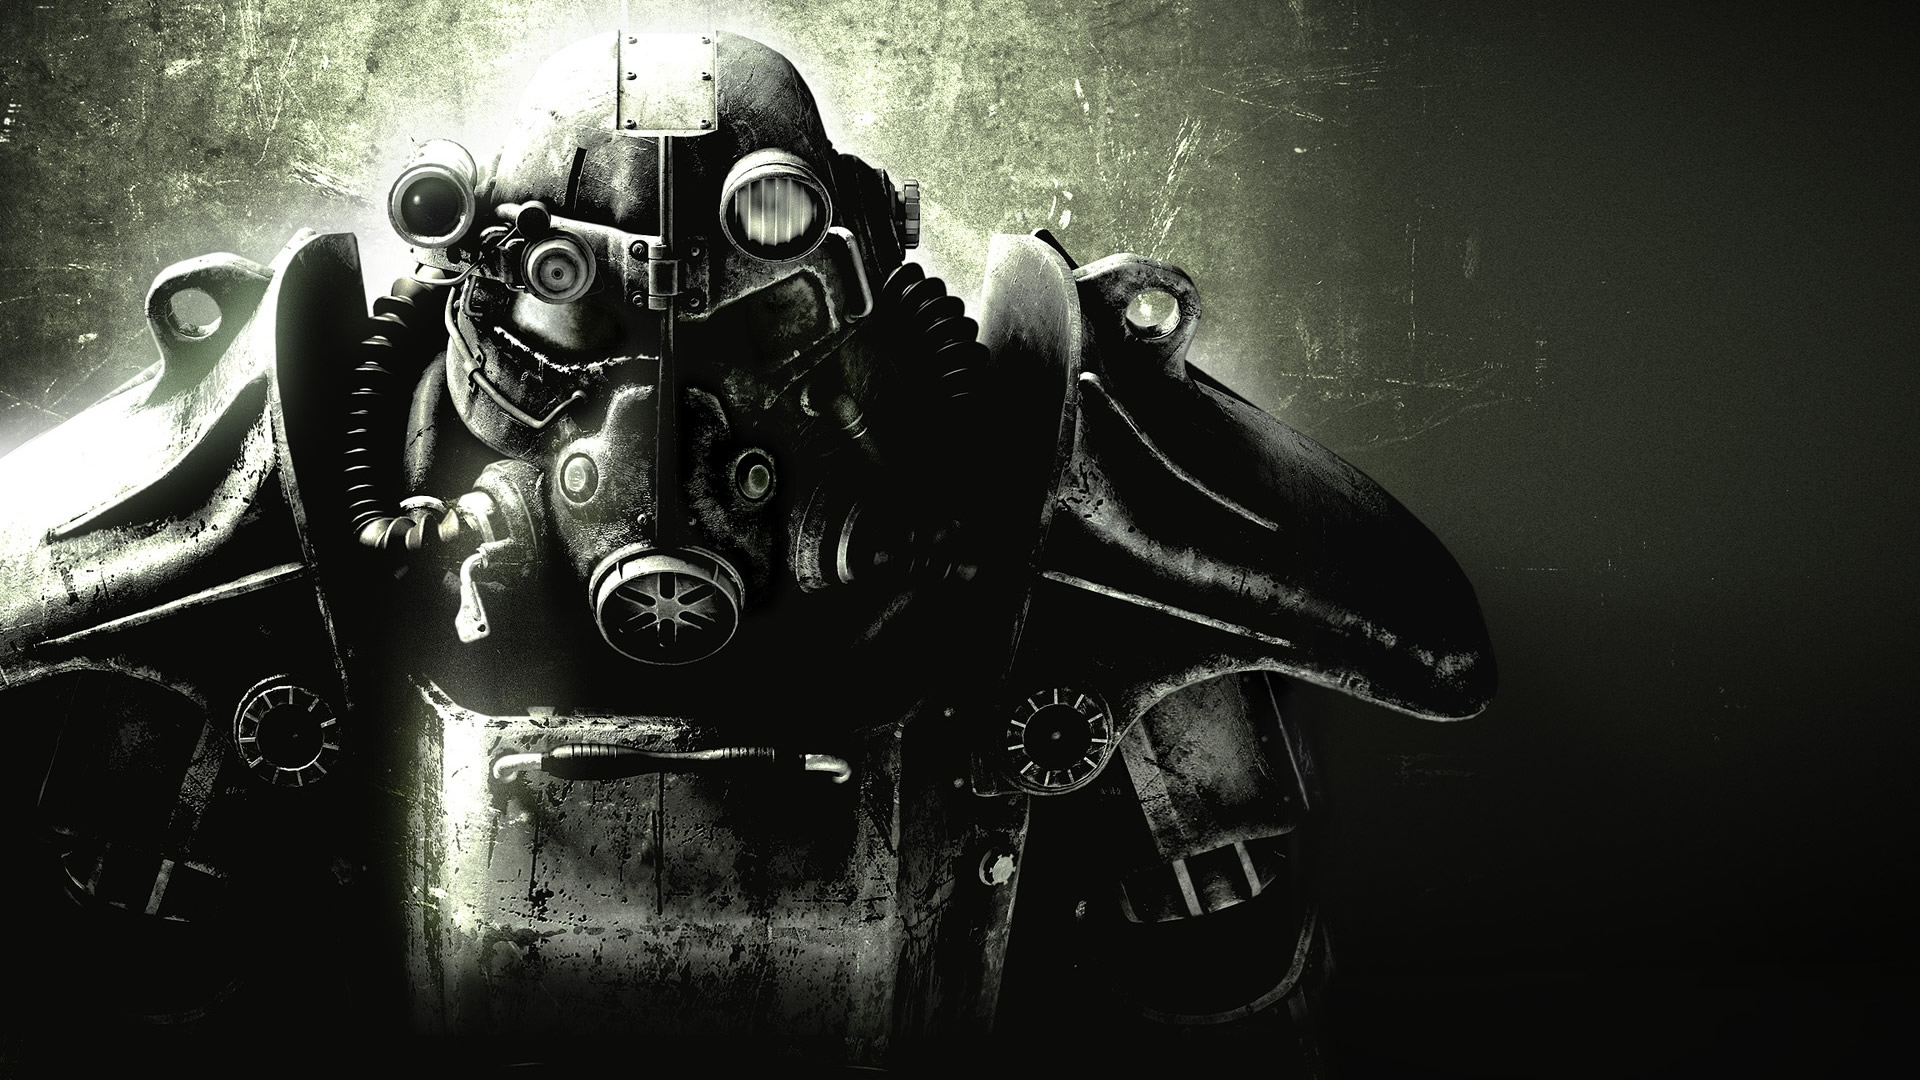 Image fallout fallout 3 hd wallpapersg war among the stars fallout fallout 3 hd wallpapersg thecheapjerseys Gallery